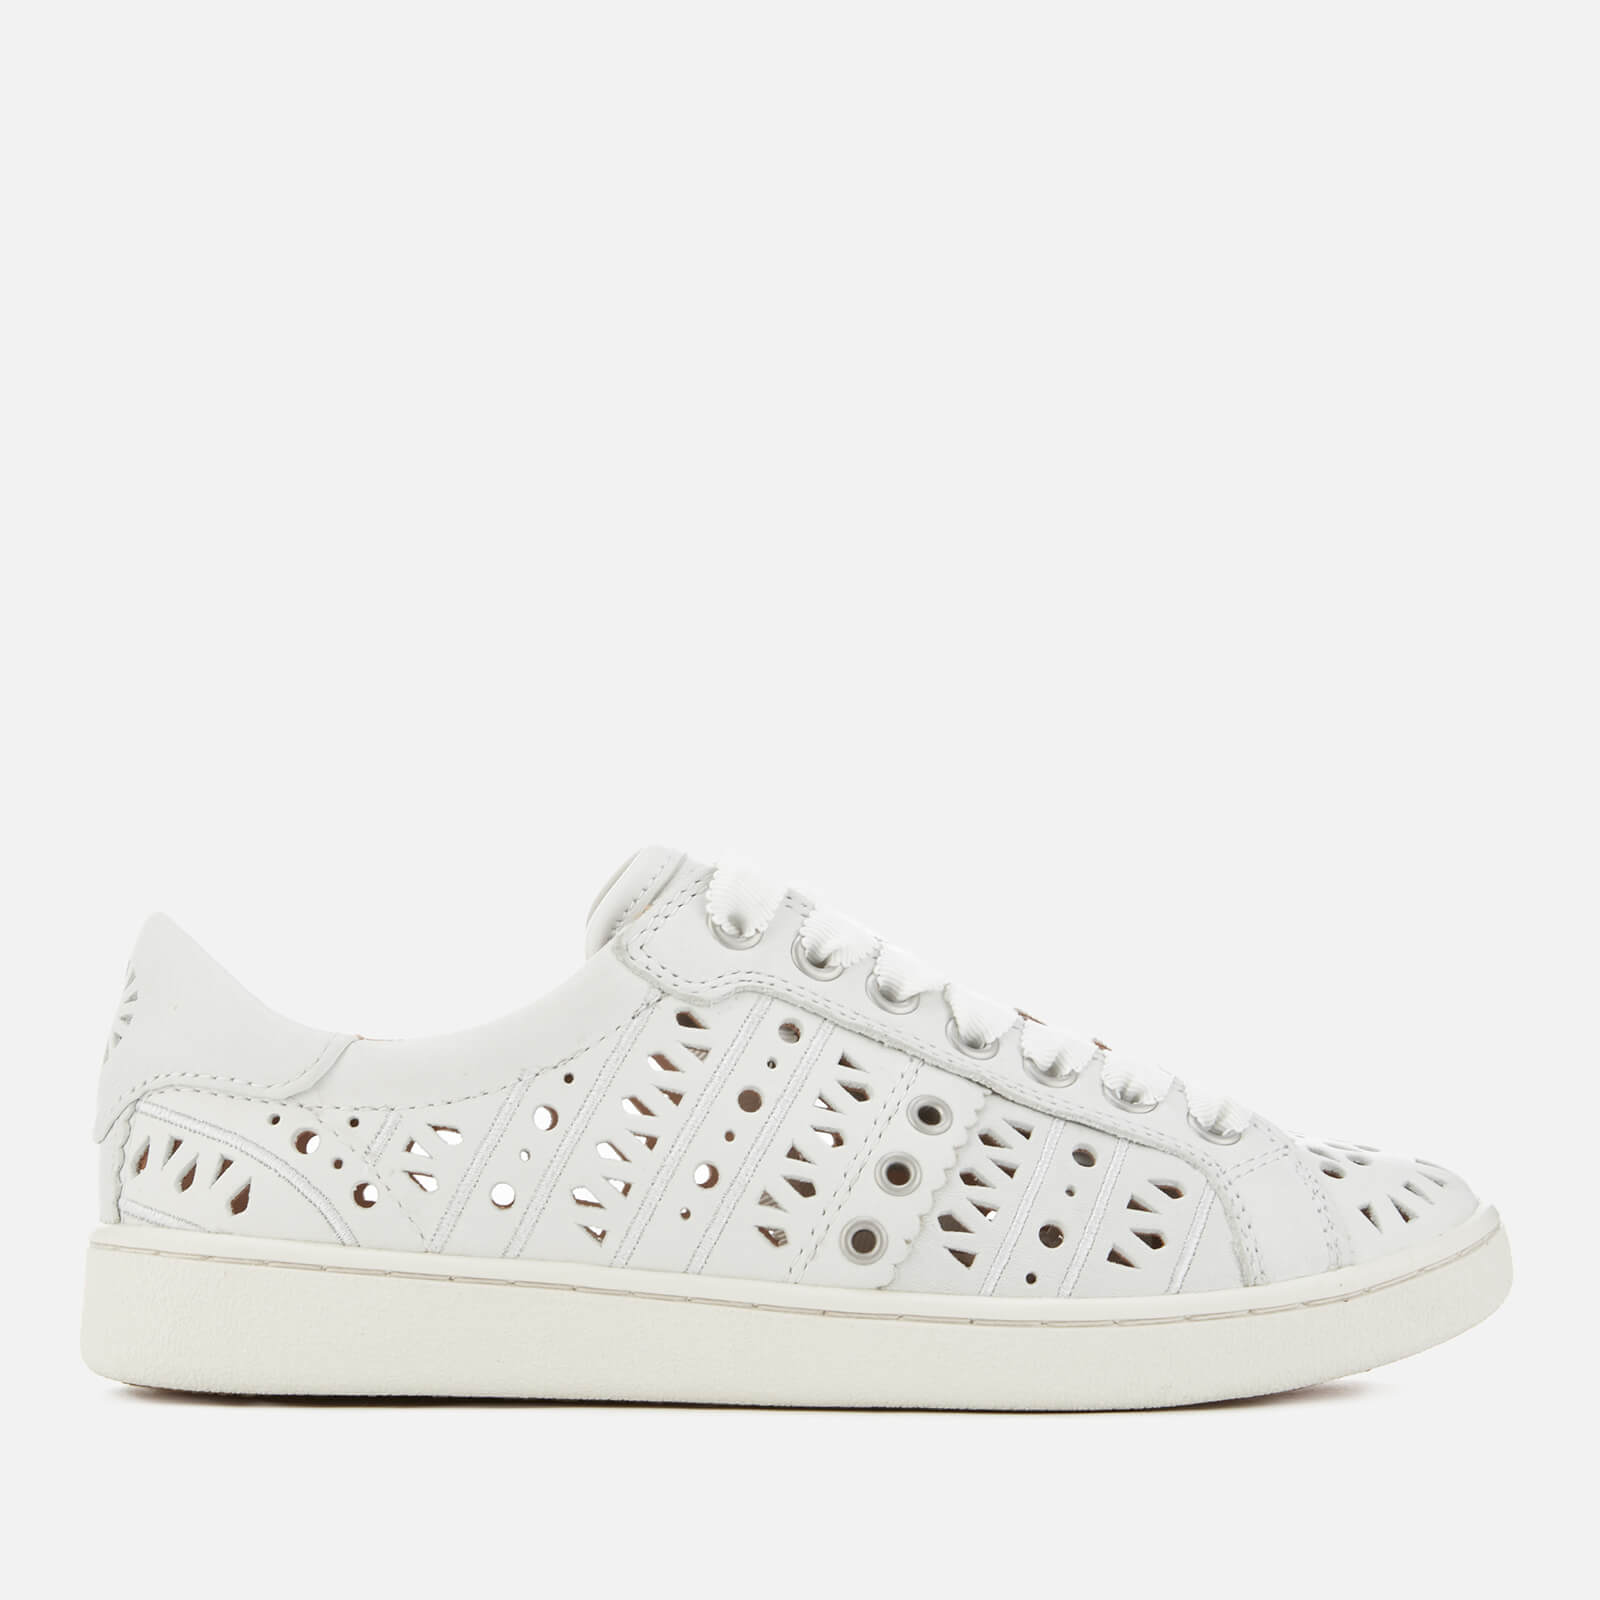 c5b48a1b081 UGG Women's Milo Perf Leather Cupsole Trainers - White